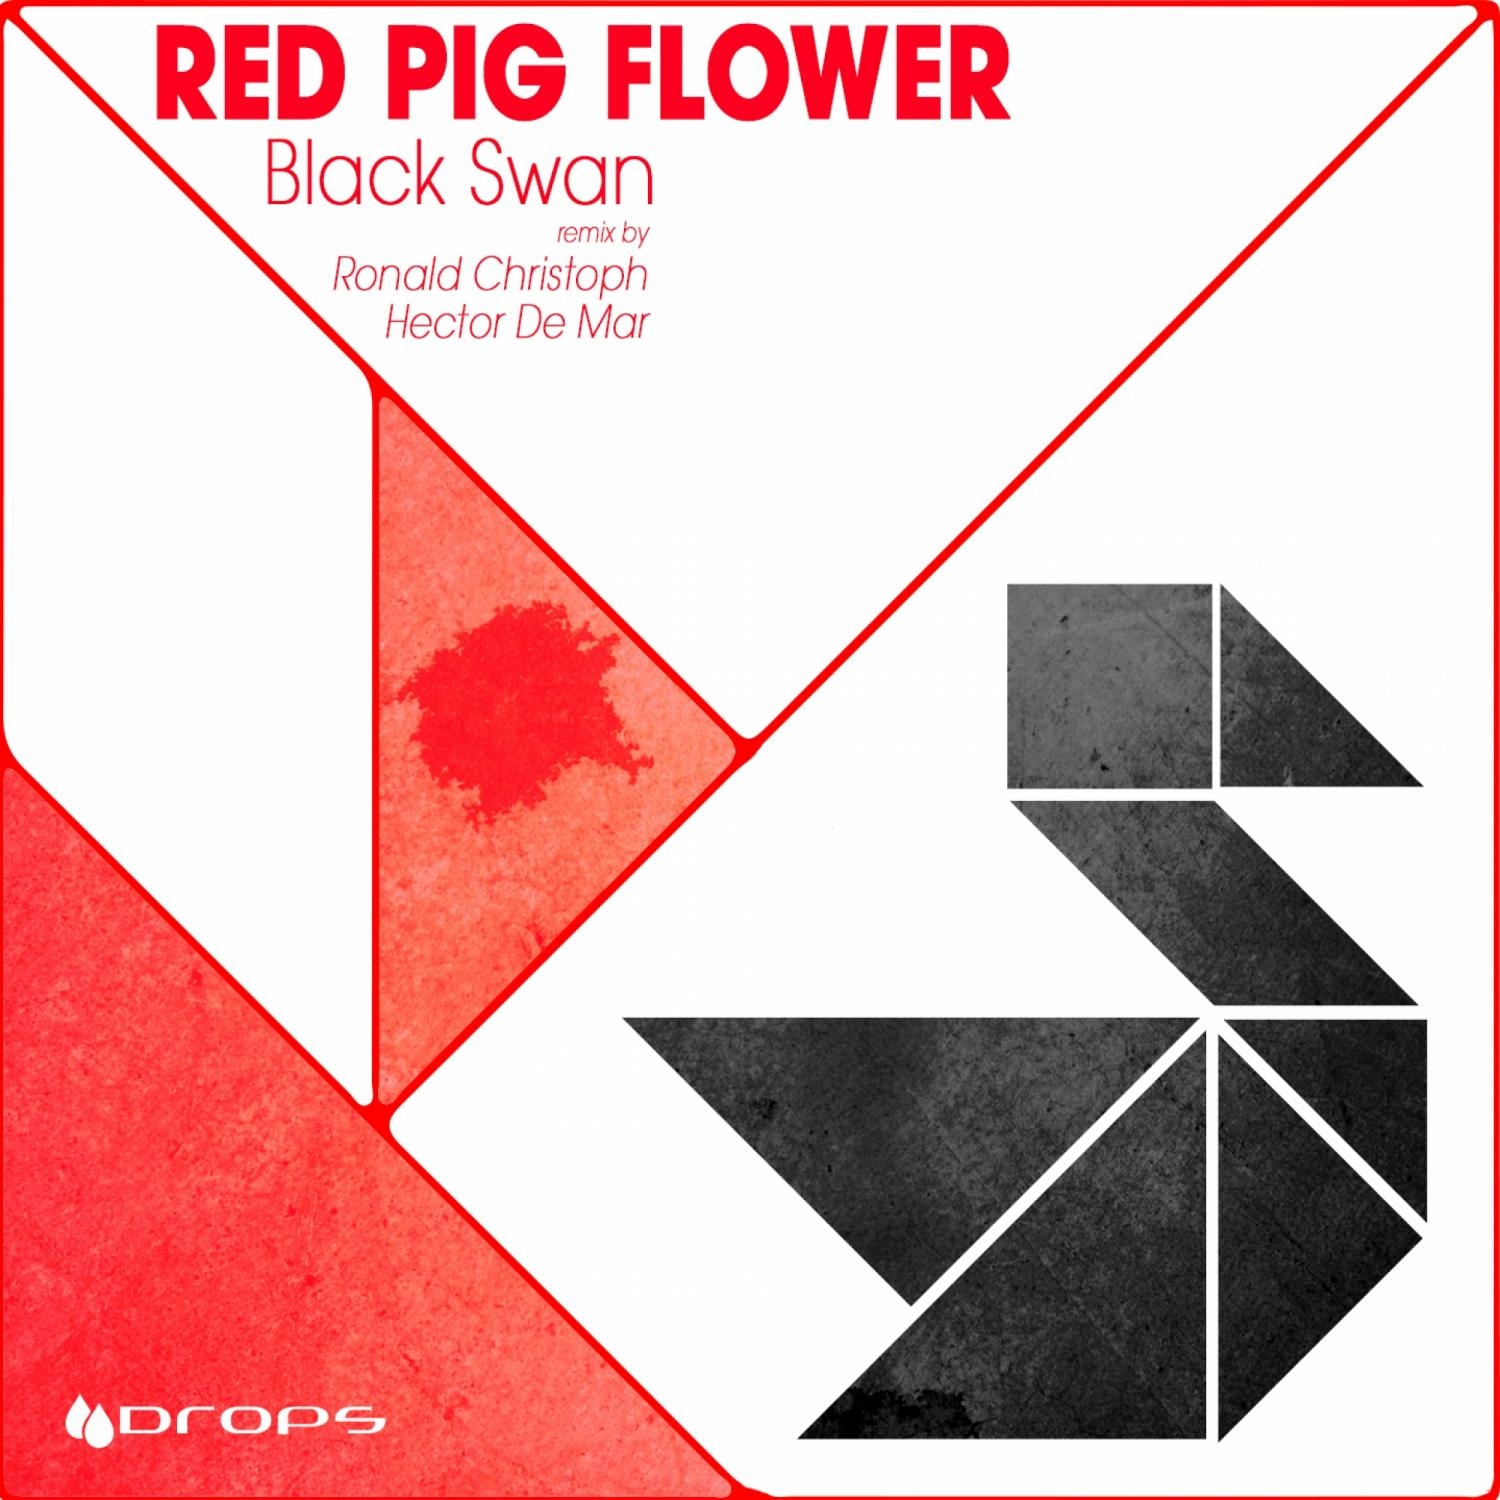 Red Pig Flower, Hector De Mar - Black Swan (Hector De Mar Remix)